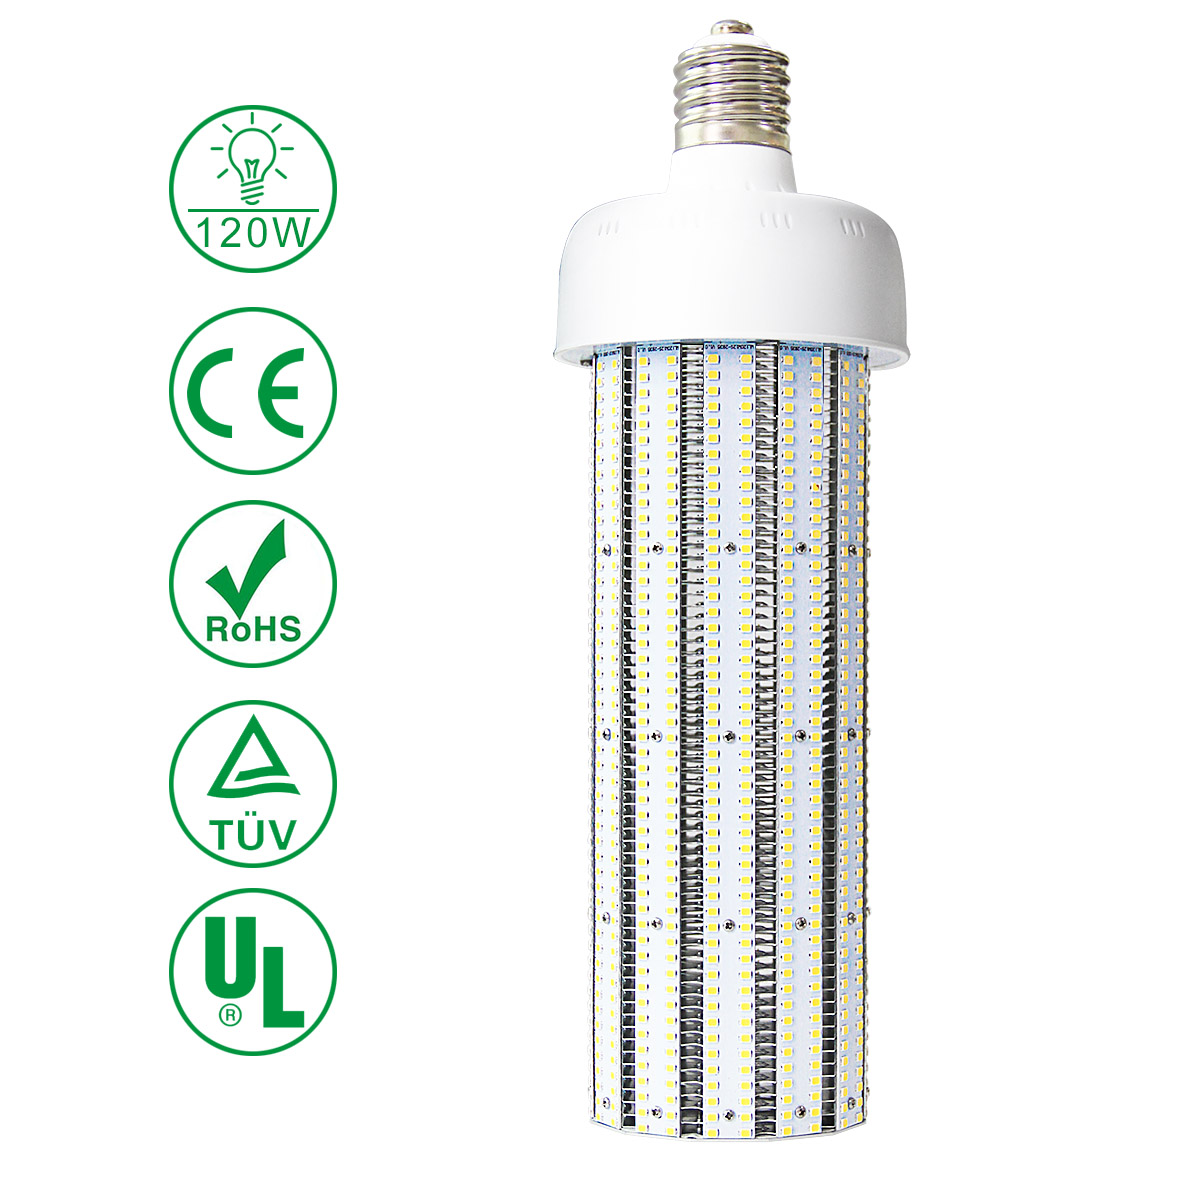 KAWELL 120W LED Corn Light Bulb, E39 Large Mogul Base LED Street/Area Light, Replacement for Fixtures HID/HPS/Metal Halide or CFL, 14400 lumen 3200K (Warm White) UL Listed TUV-Qualified DLC Certified